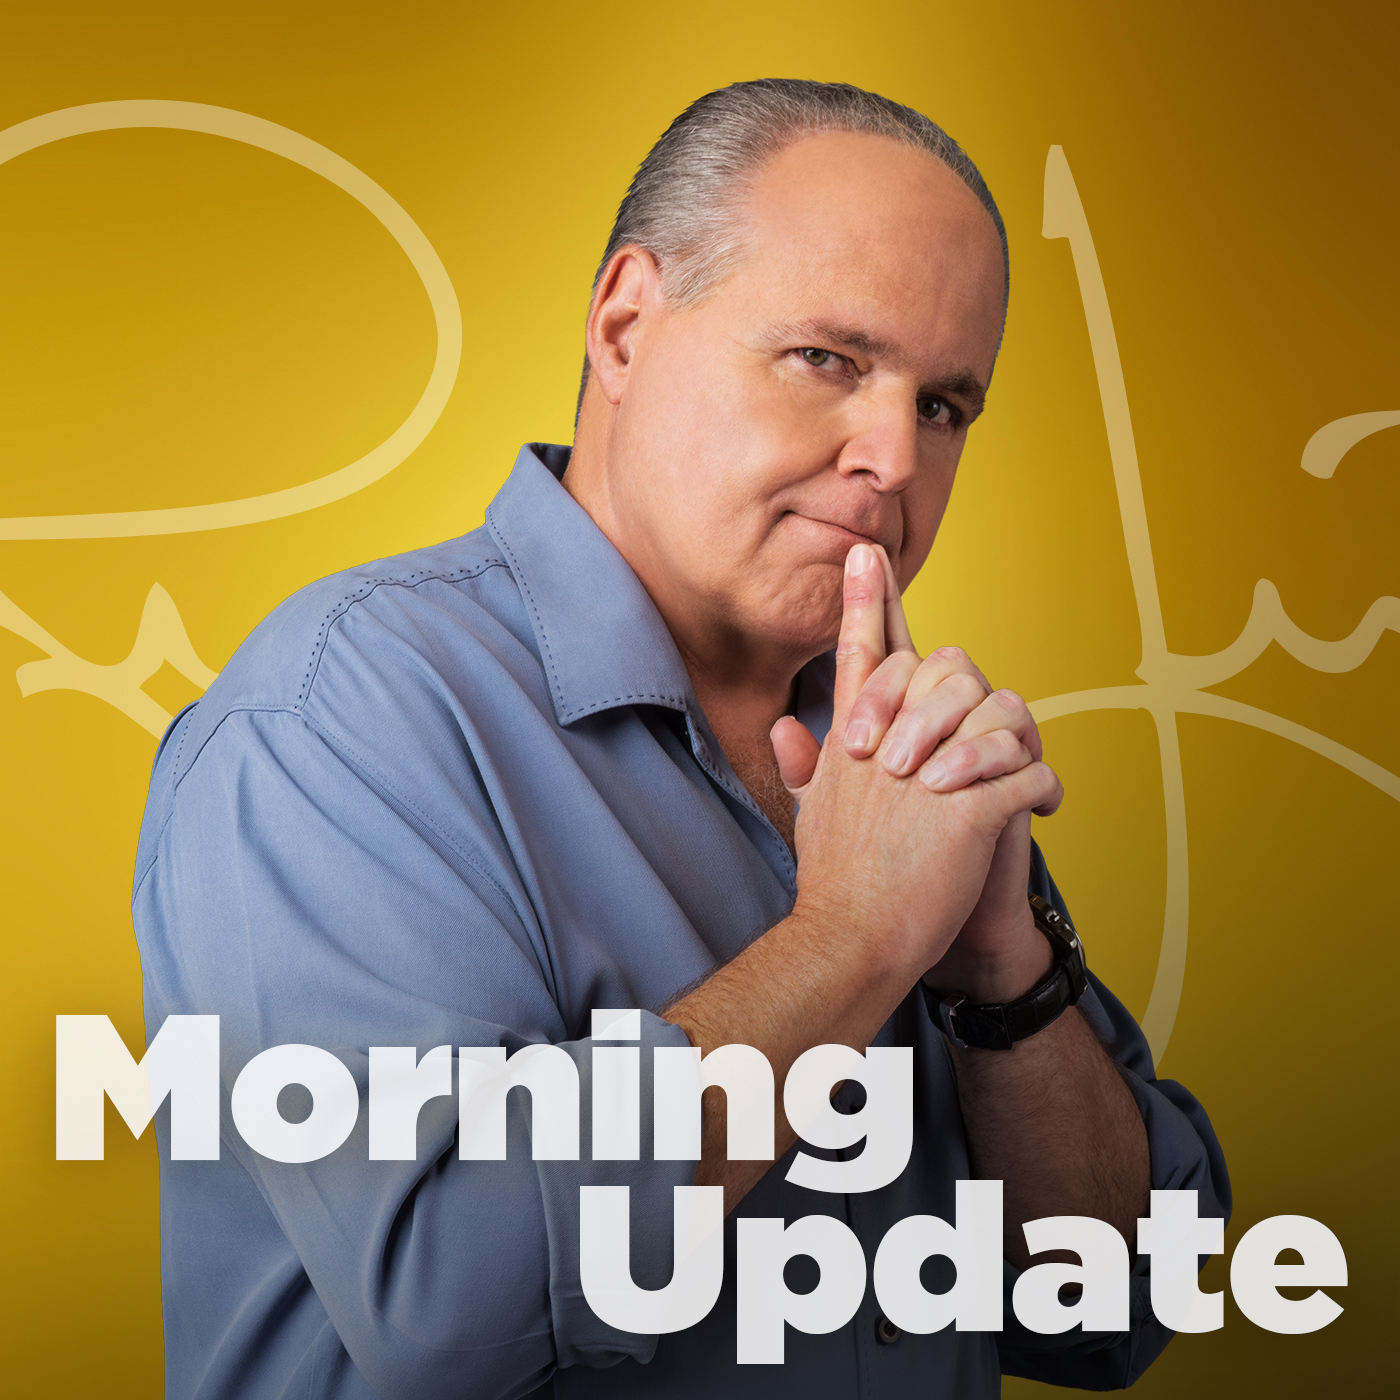 Rush Limbaugh Dec 31, 2019